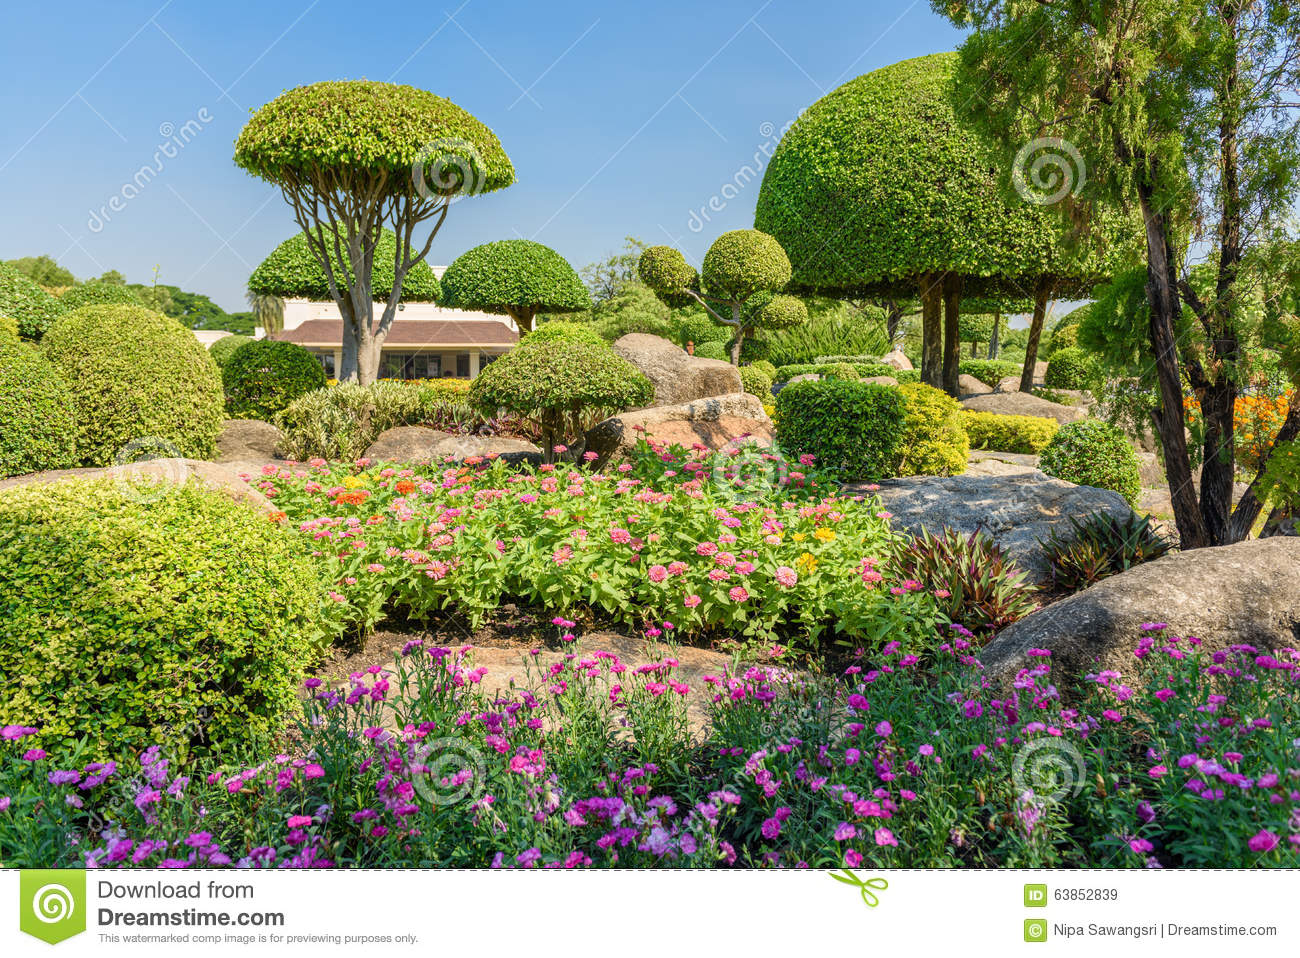 Gardening and landscaping stock photo image 63852839 - Decorative small trees for landscaping ...